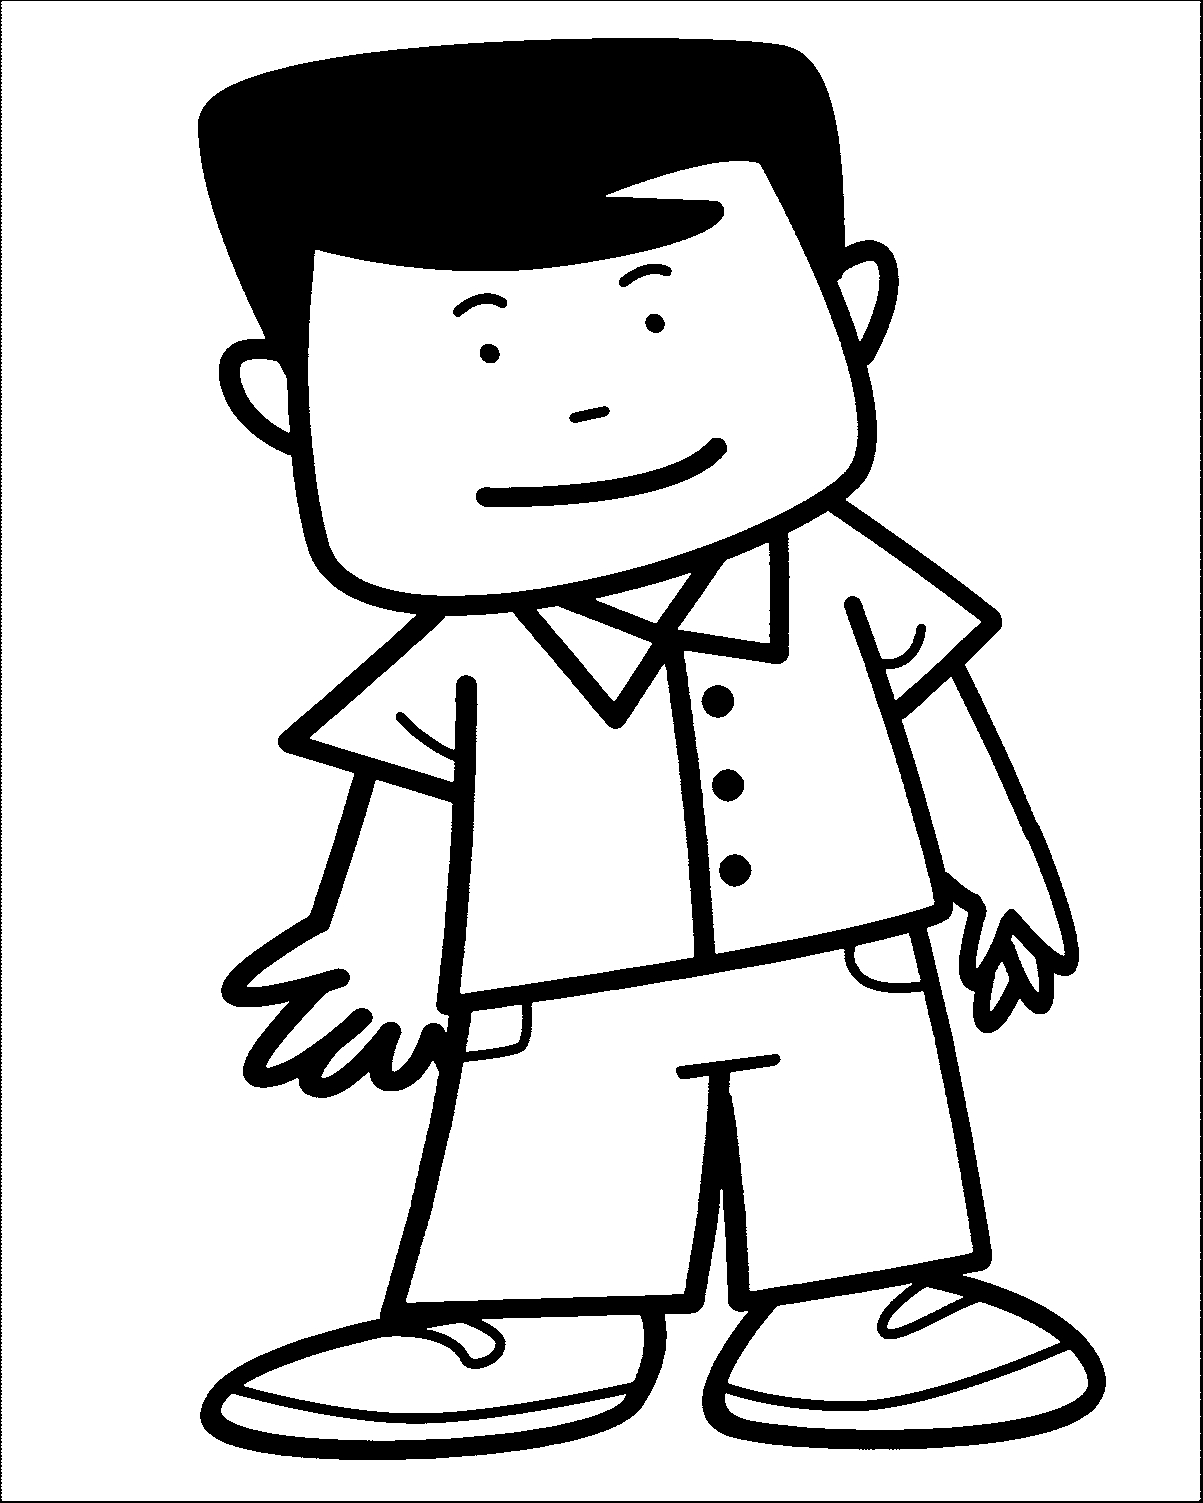 man coloring pages - man coloring page